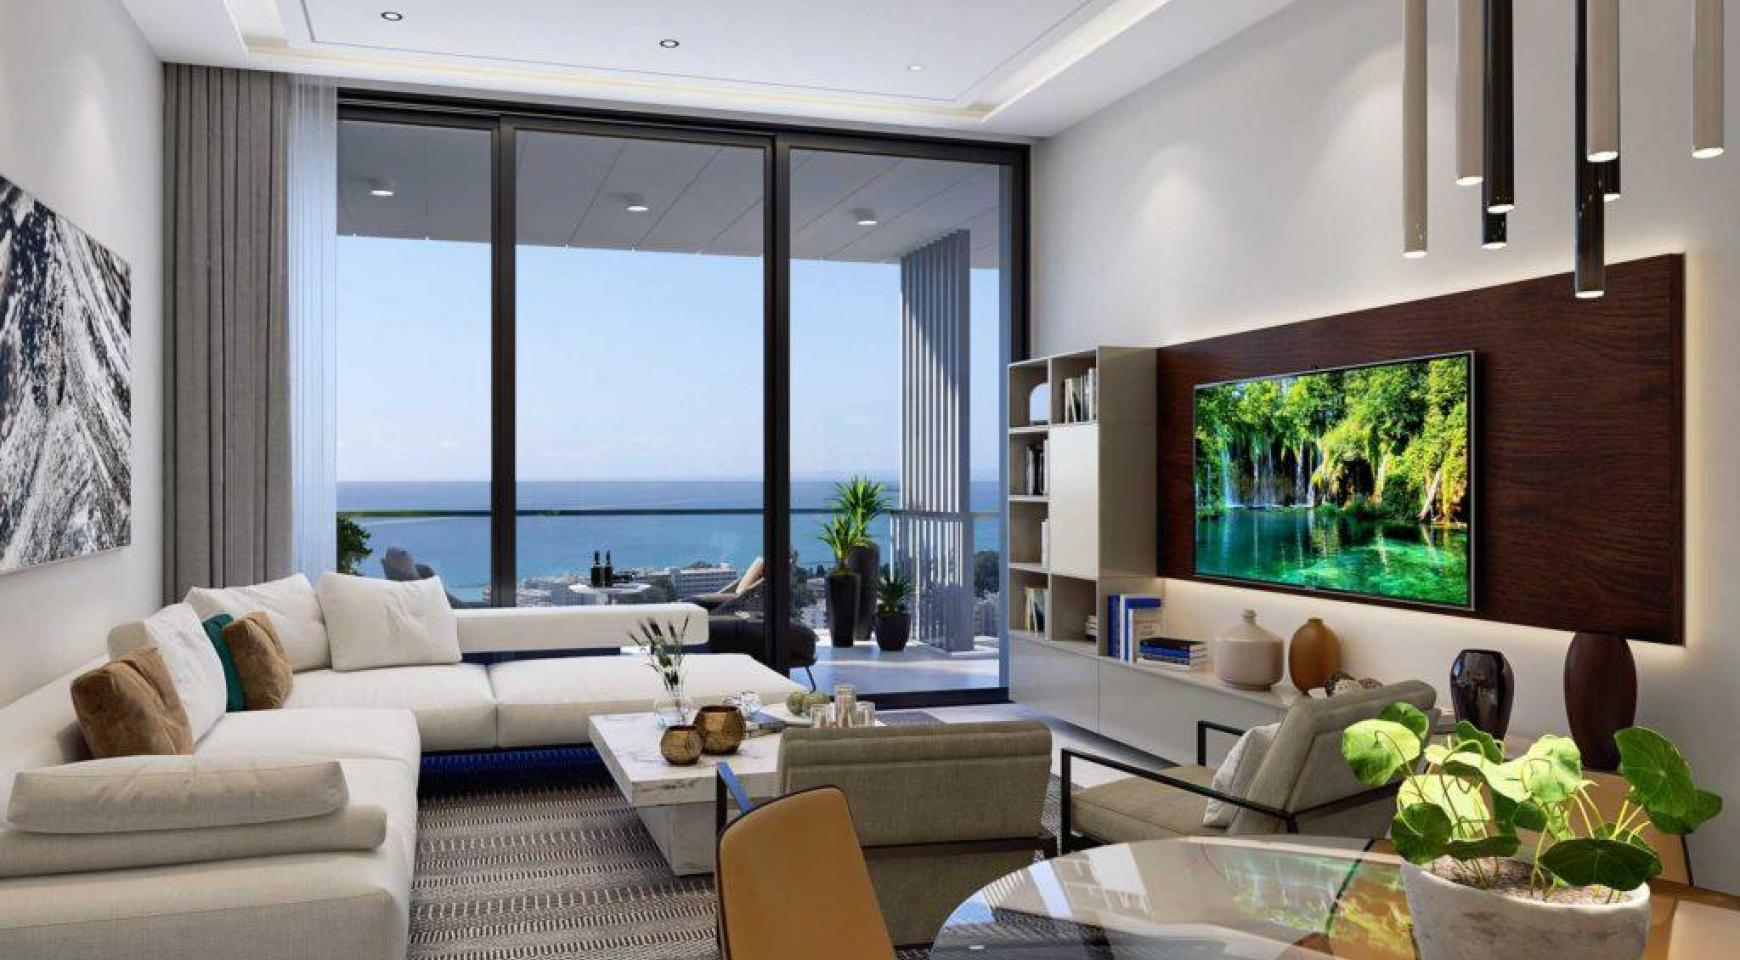 3 Bedroom Apartment with Sea Views in a Luxury Complex - 2